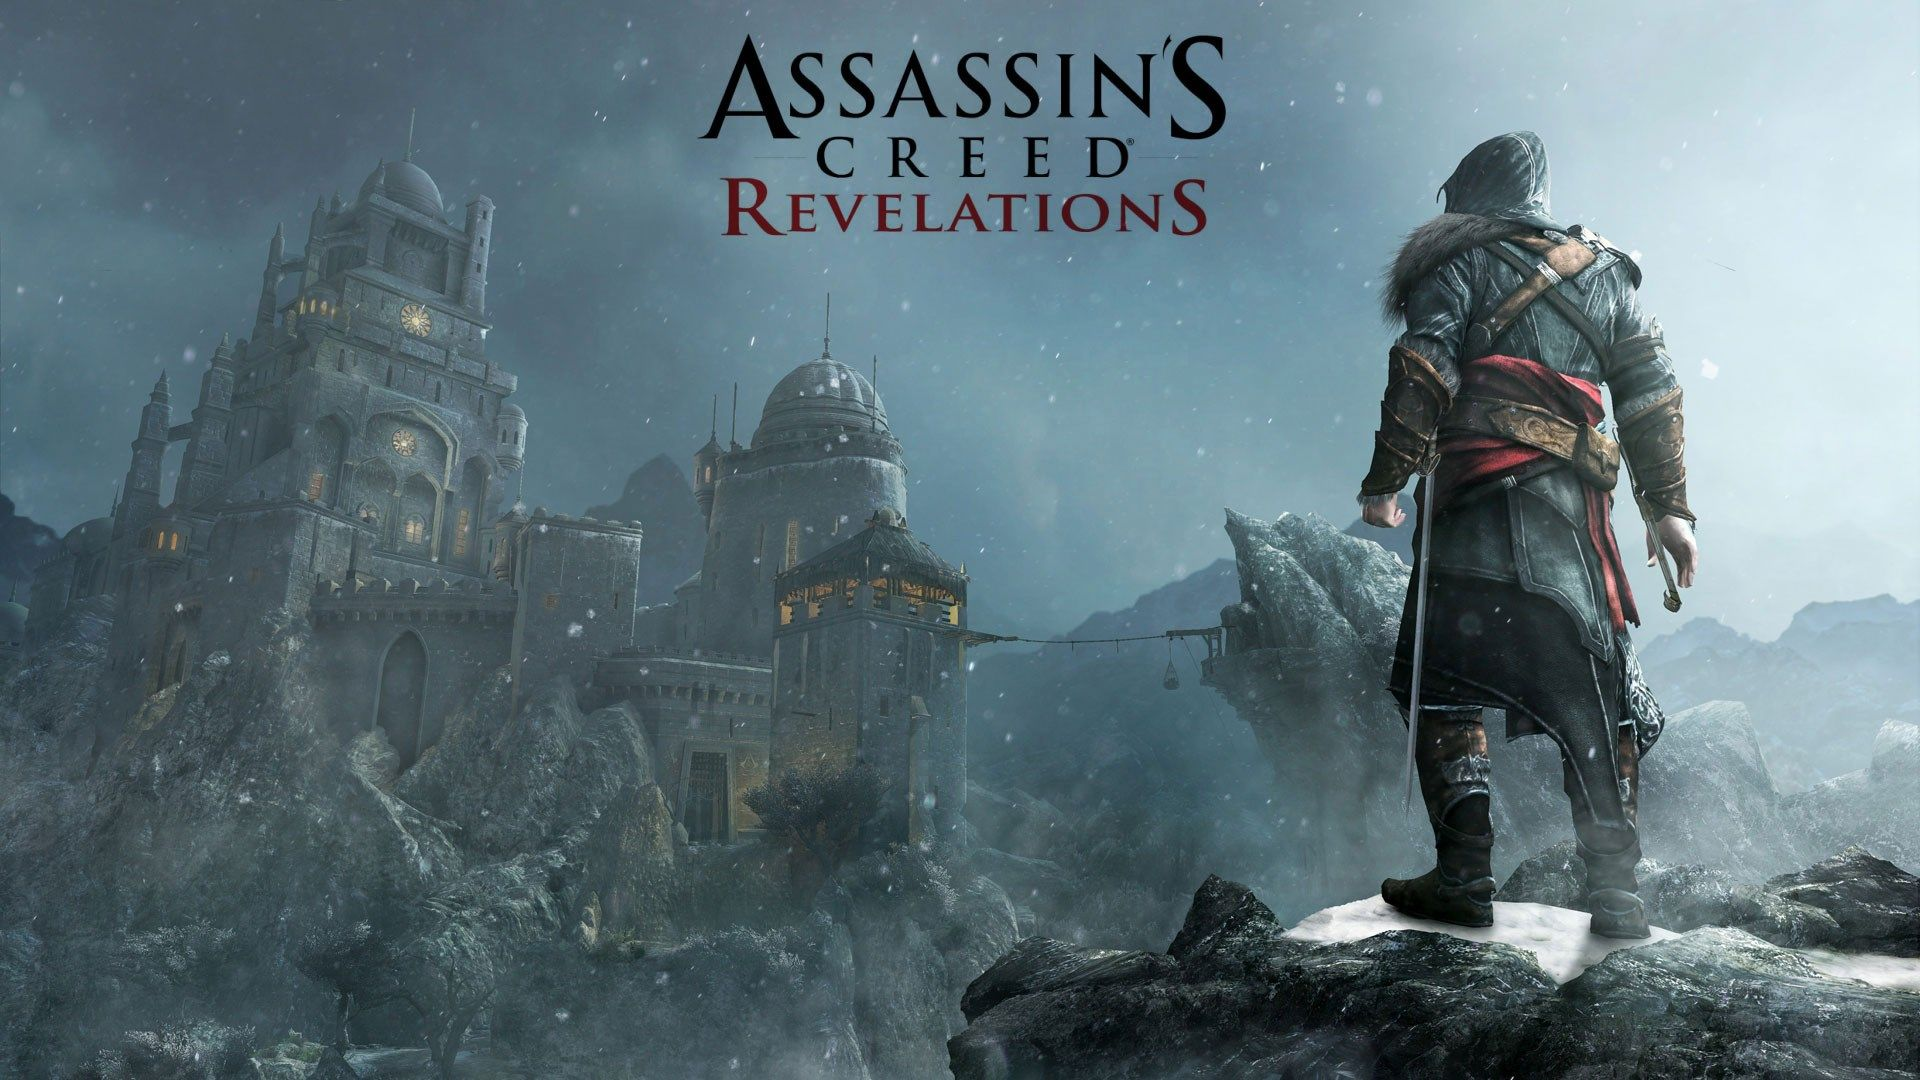 1920x1080 Assassins Creed Revelations game wallpaper